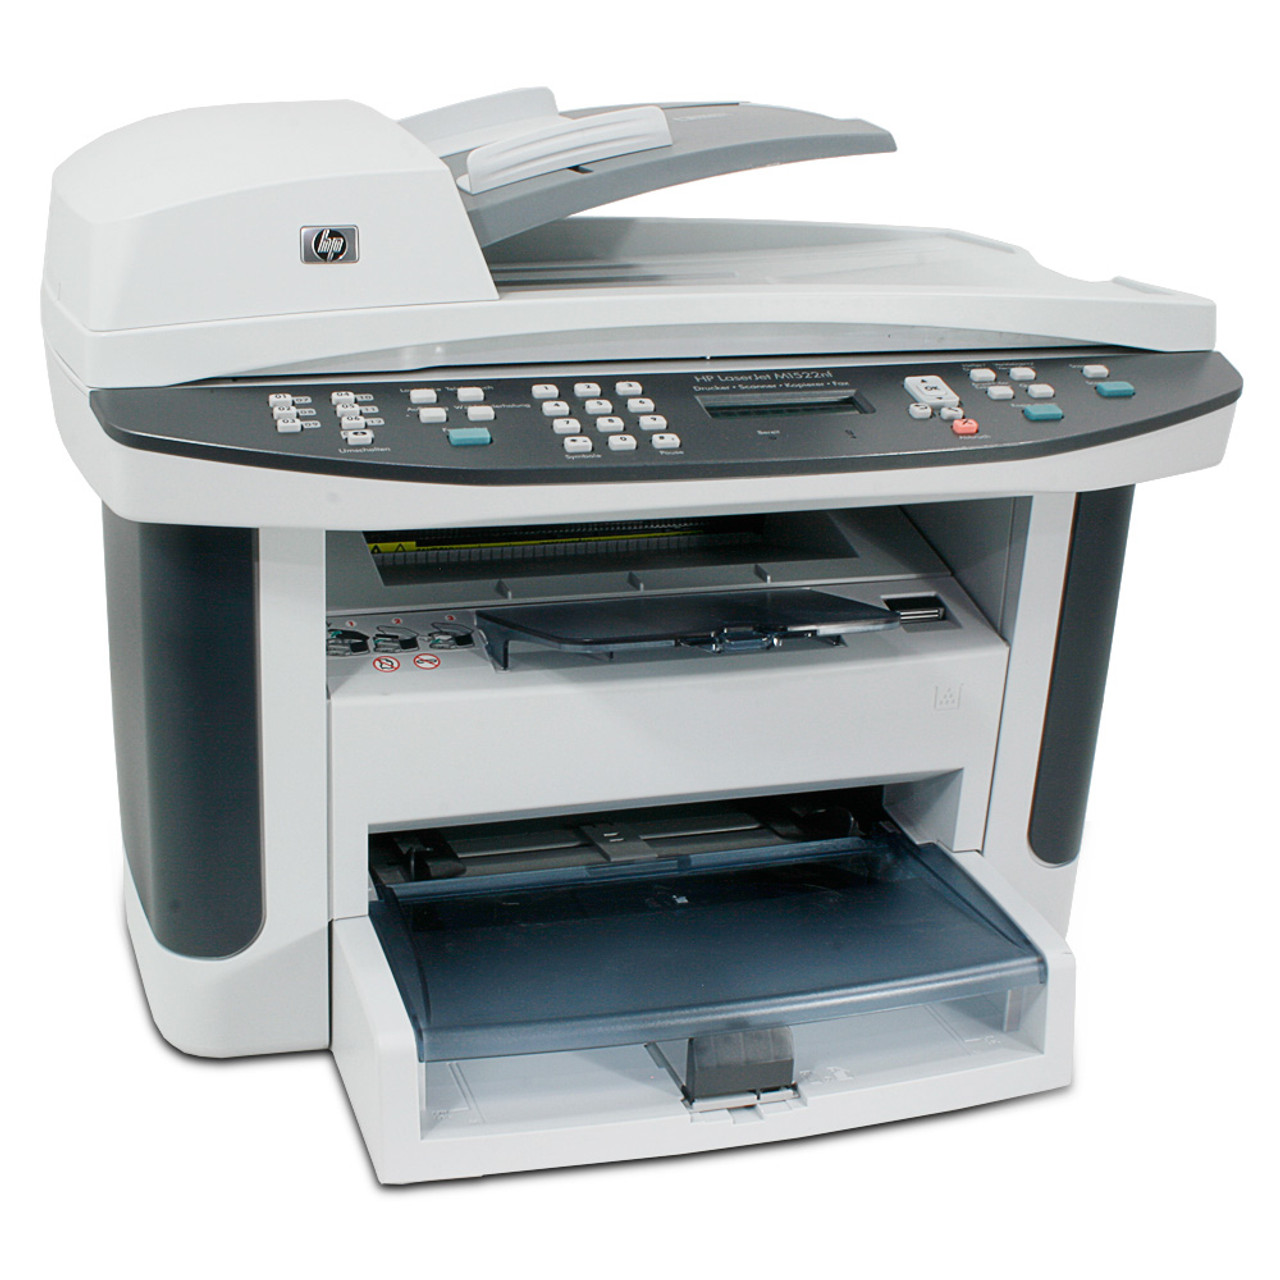 HP LaserJet M1522nf MFP - CB534A - HP Laser Printer for sale